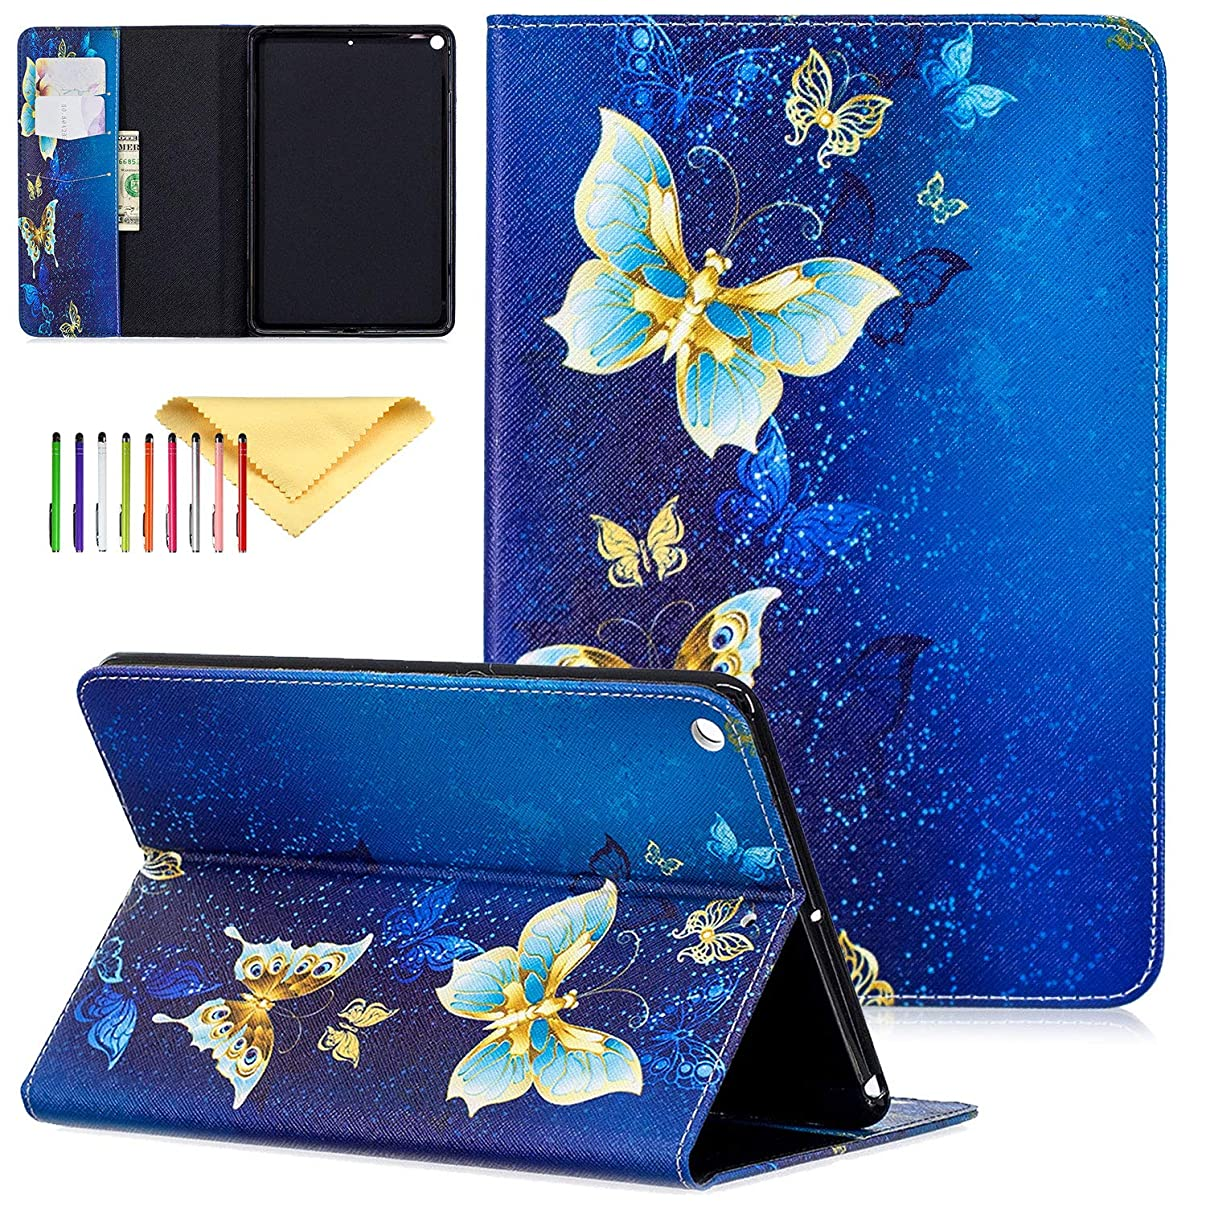 iPad Mini 5 Case Kids 2019 Latest Model A2133 / A2124 / A2126, Cookk Slim Flip Stand Skinshell with Card Slots Lightweight Protective Cases and Covers for Apple iPad Mini 5 7.9